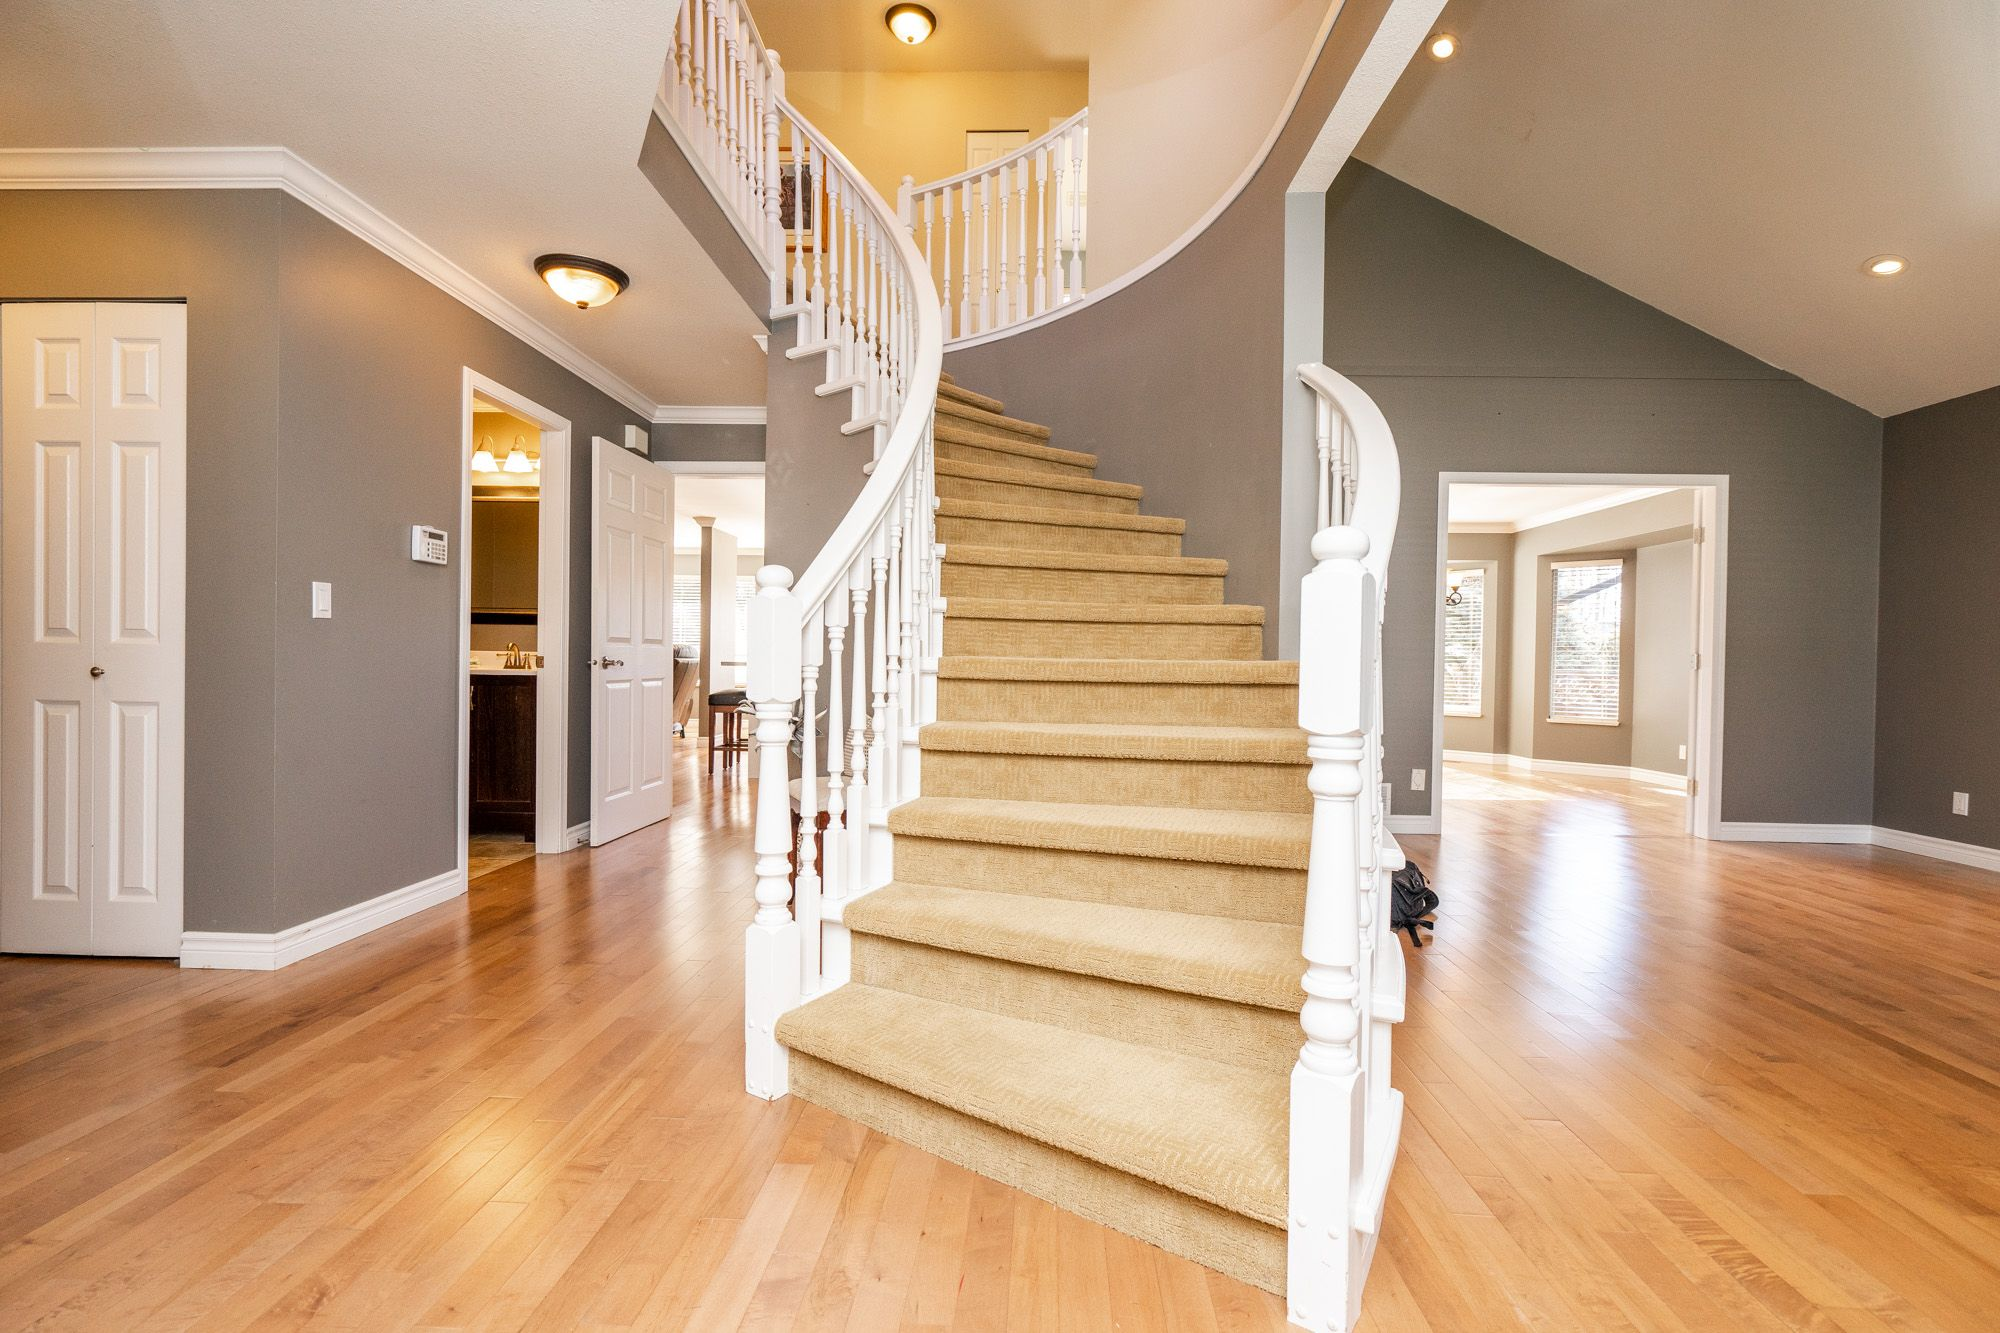 """Photo 18: Photos: 8448 213 Street in Langley: Walnut Grove House for sale in """"Forest Hills"""" : MLS®# R2259409"""